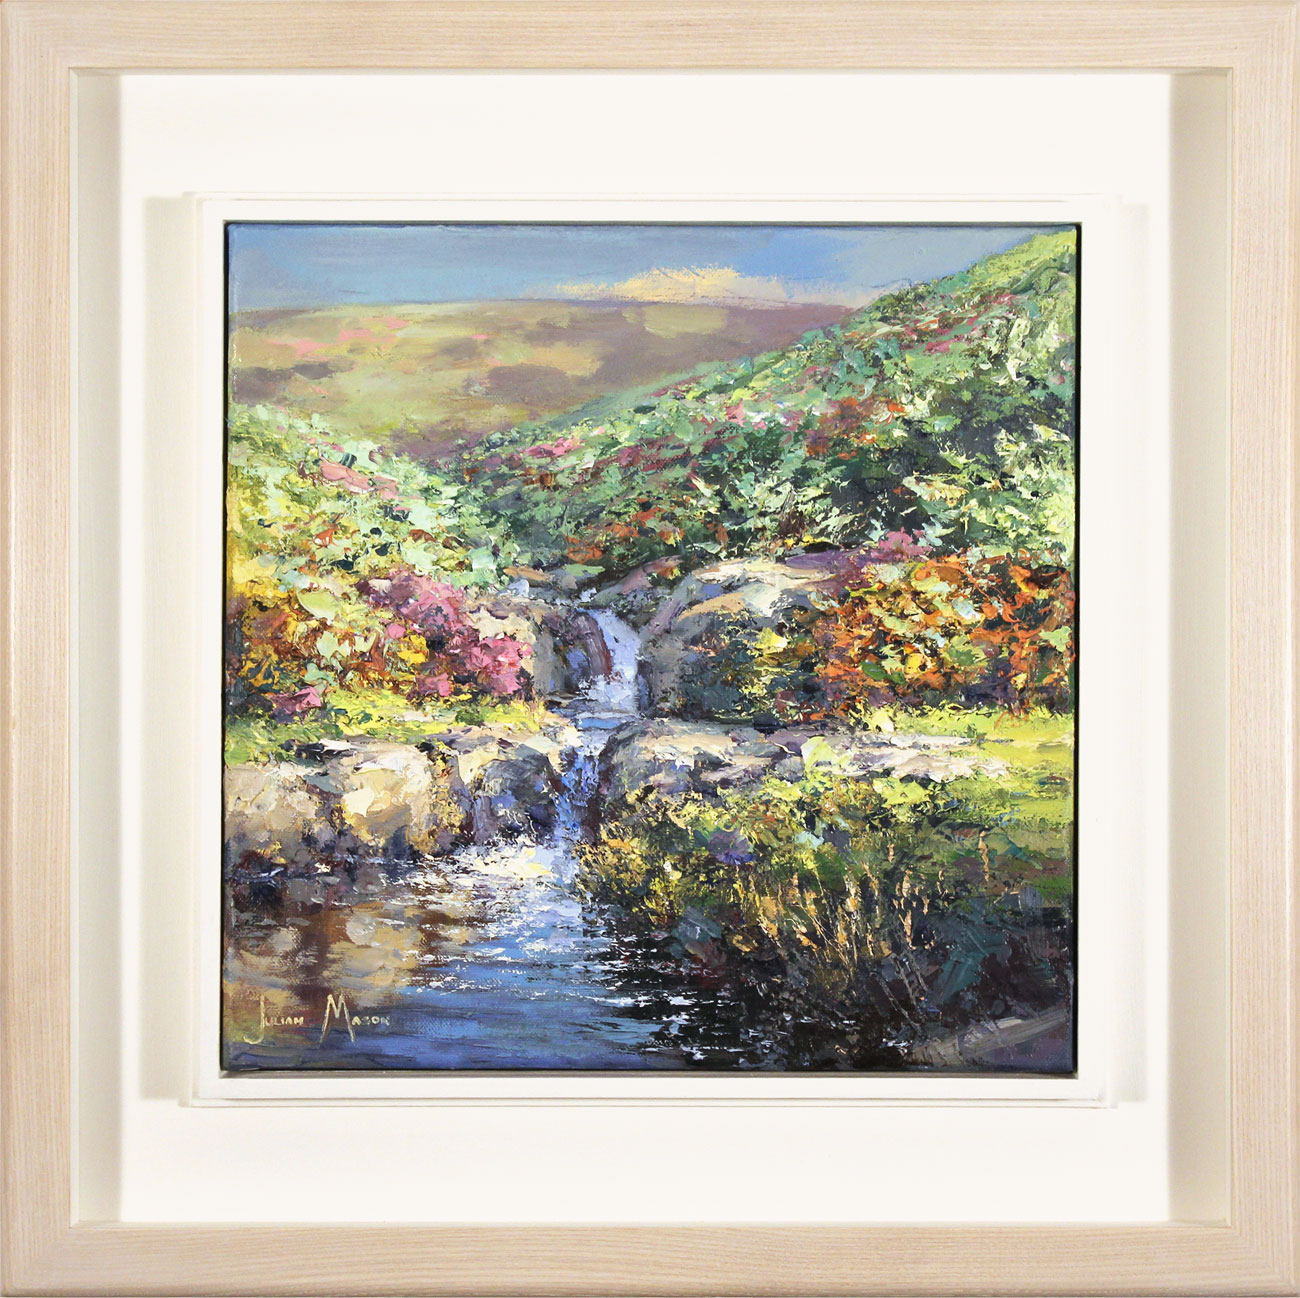 Julian Mason, Original oil painting on canvas, Highshaw Clough Click to enlarge